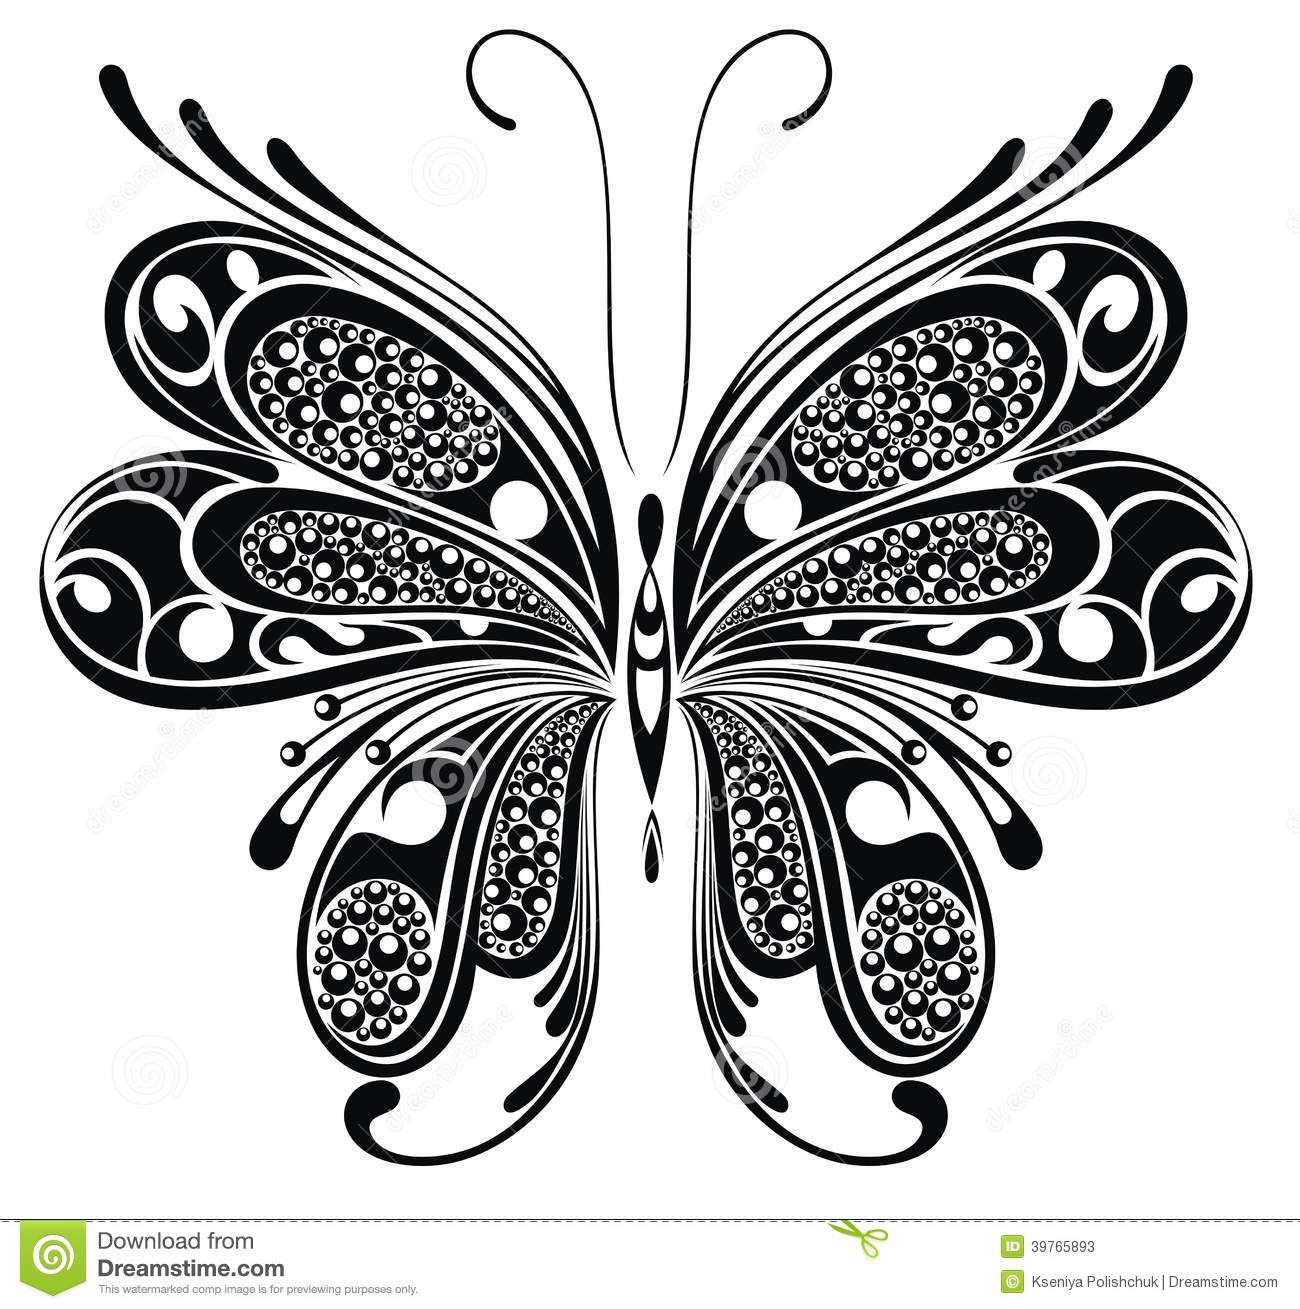 Cool T Shirt Schwarz S Black Butterfly. Tattoo Design Stock Vector - Image: 39765893